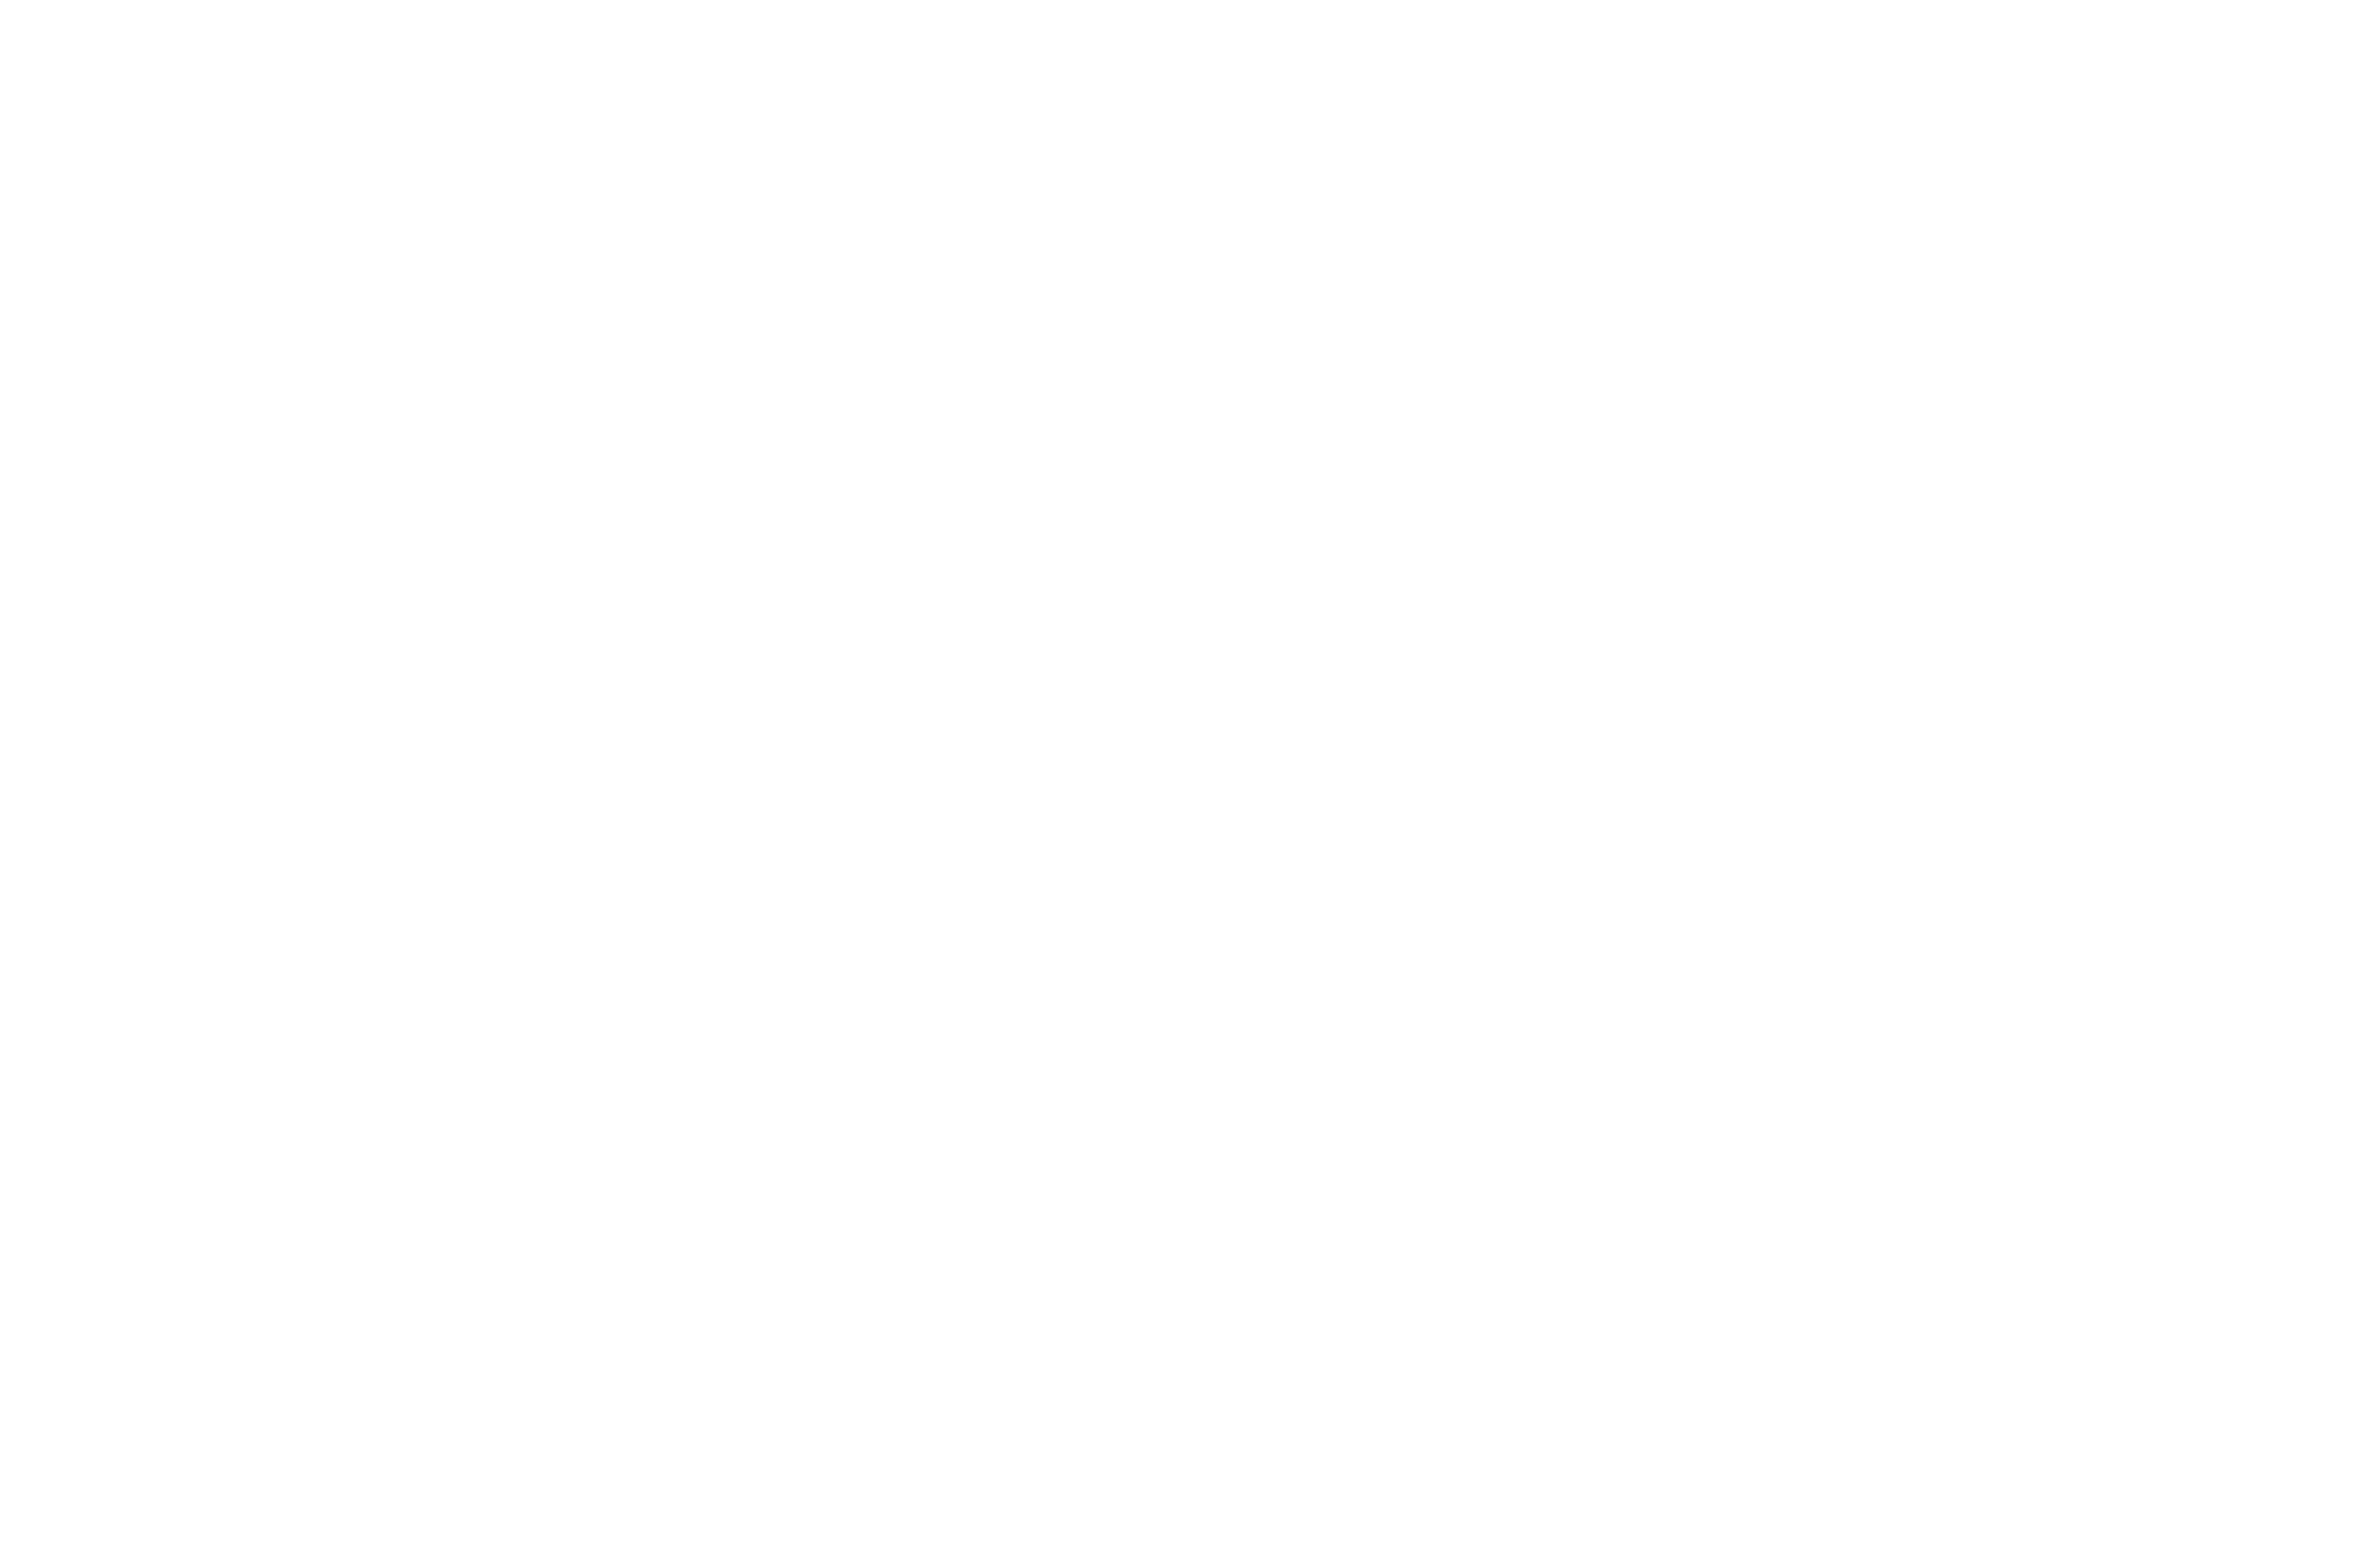 OFFICIALSELECTION-ReelsoftheDead-LasVegas2019 white.png